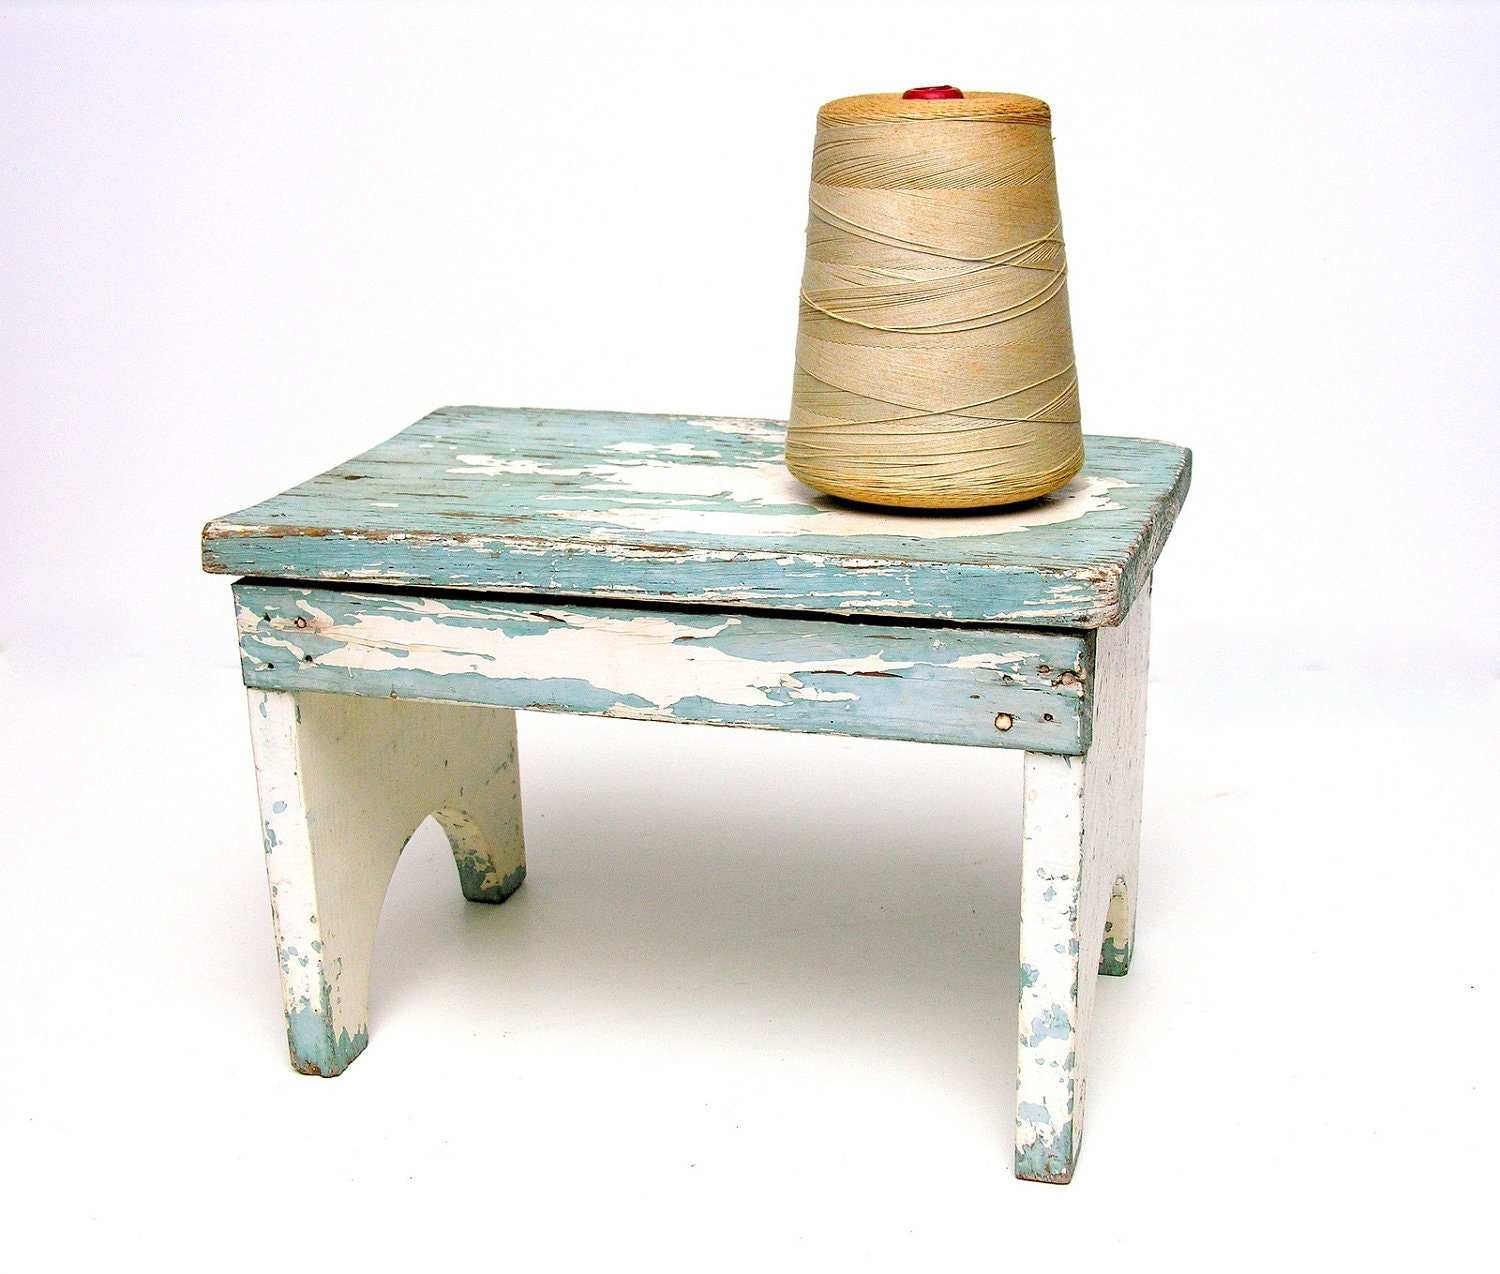 Short Wooden Stools ~ Antique rustic step stool riser wooden bench small primitive